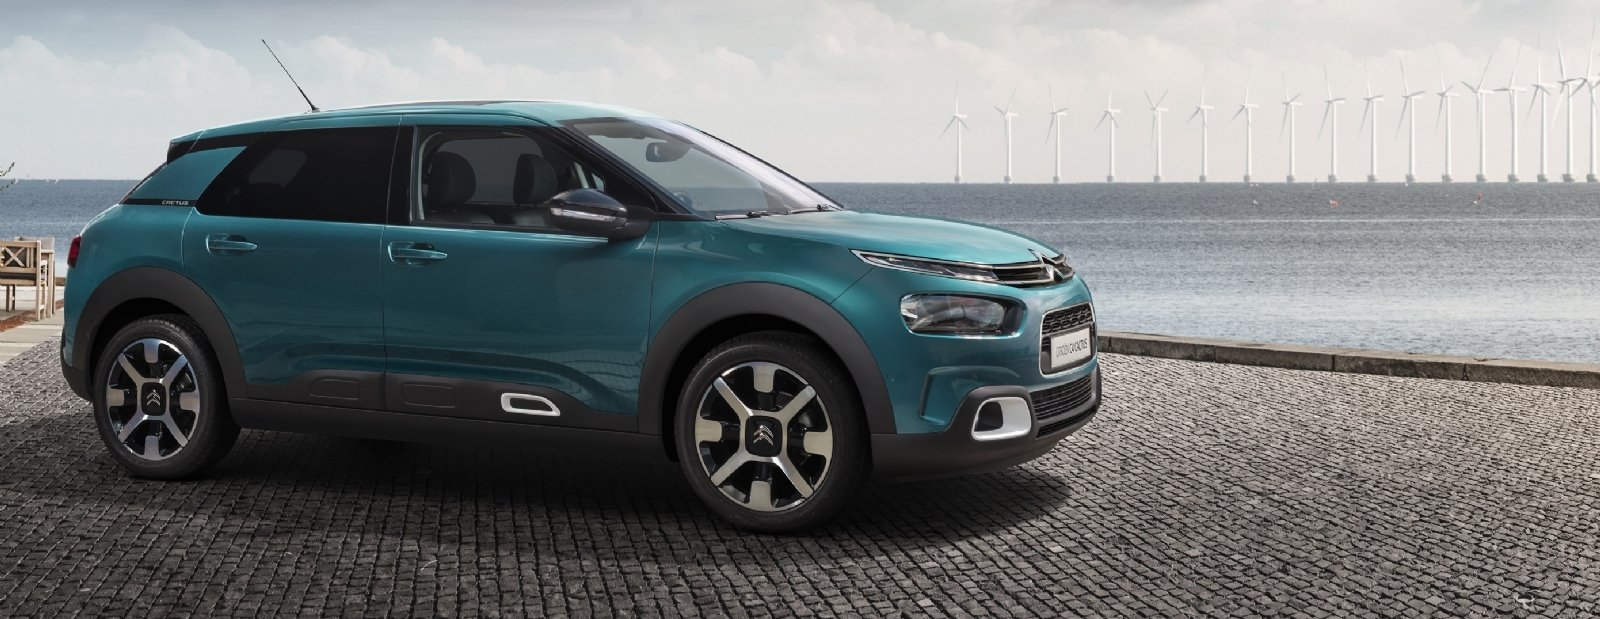 J.C Halliday & Sons Citroen New C4 Cactus Hatch